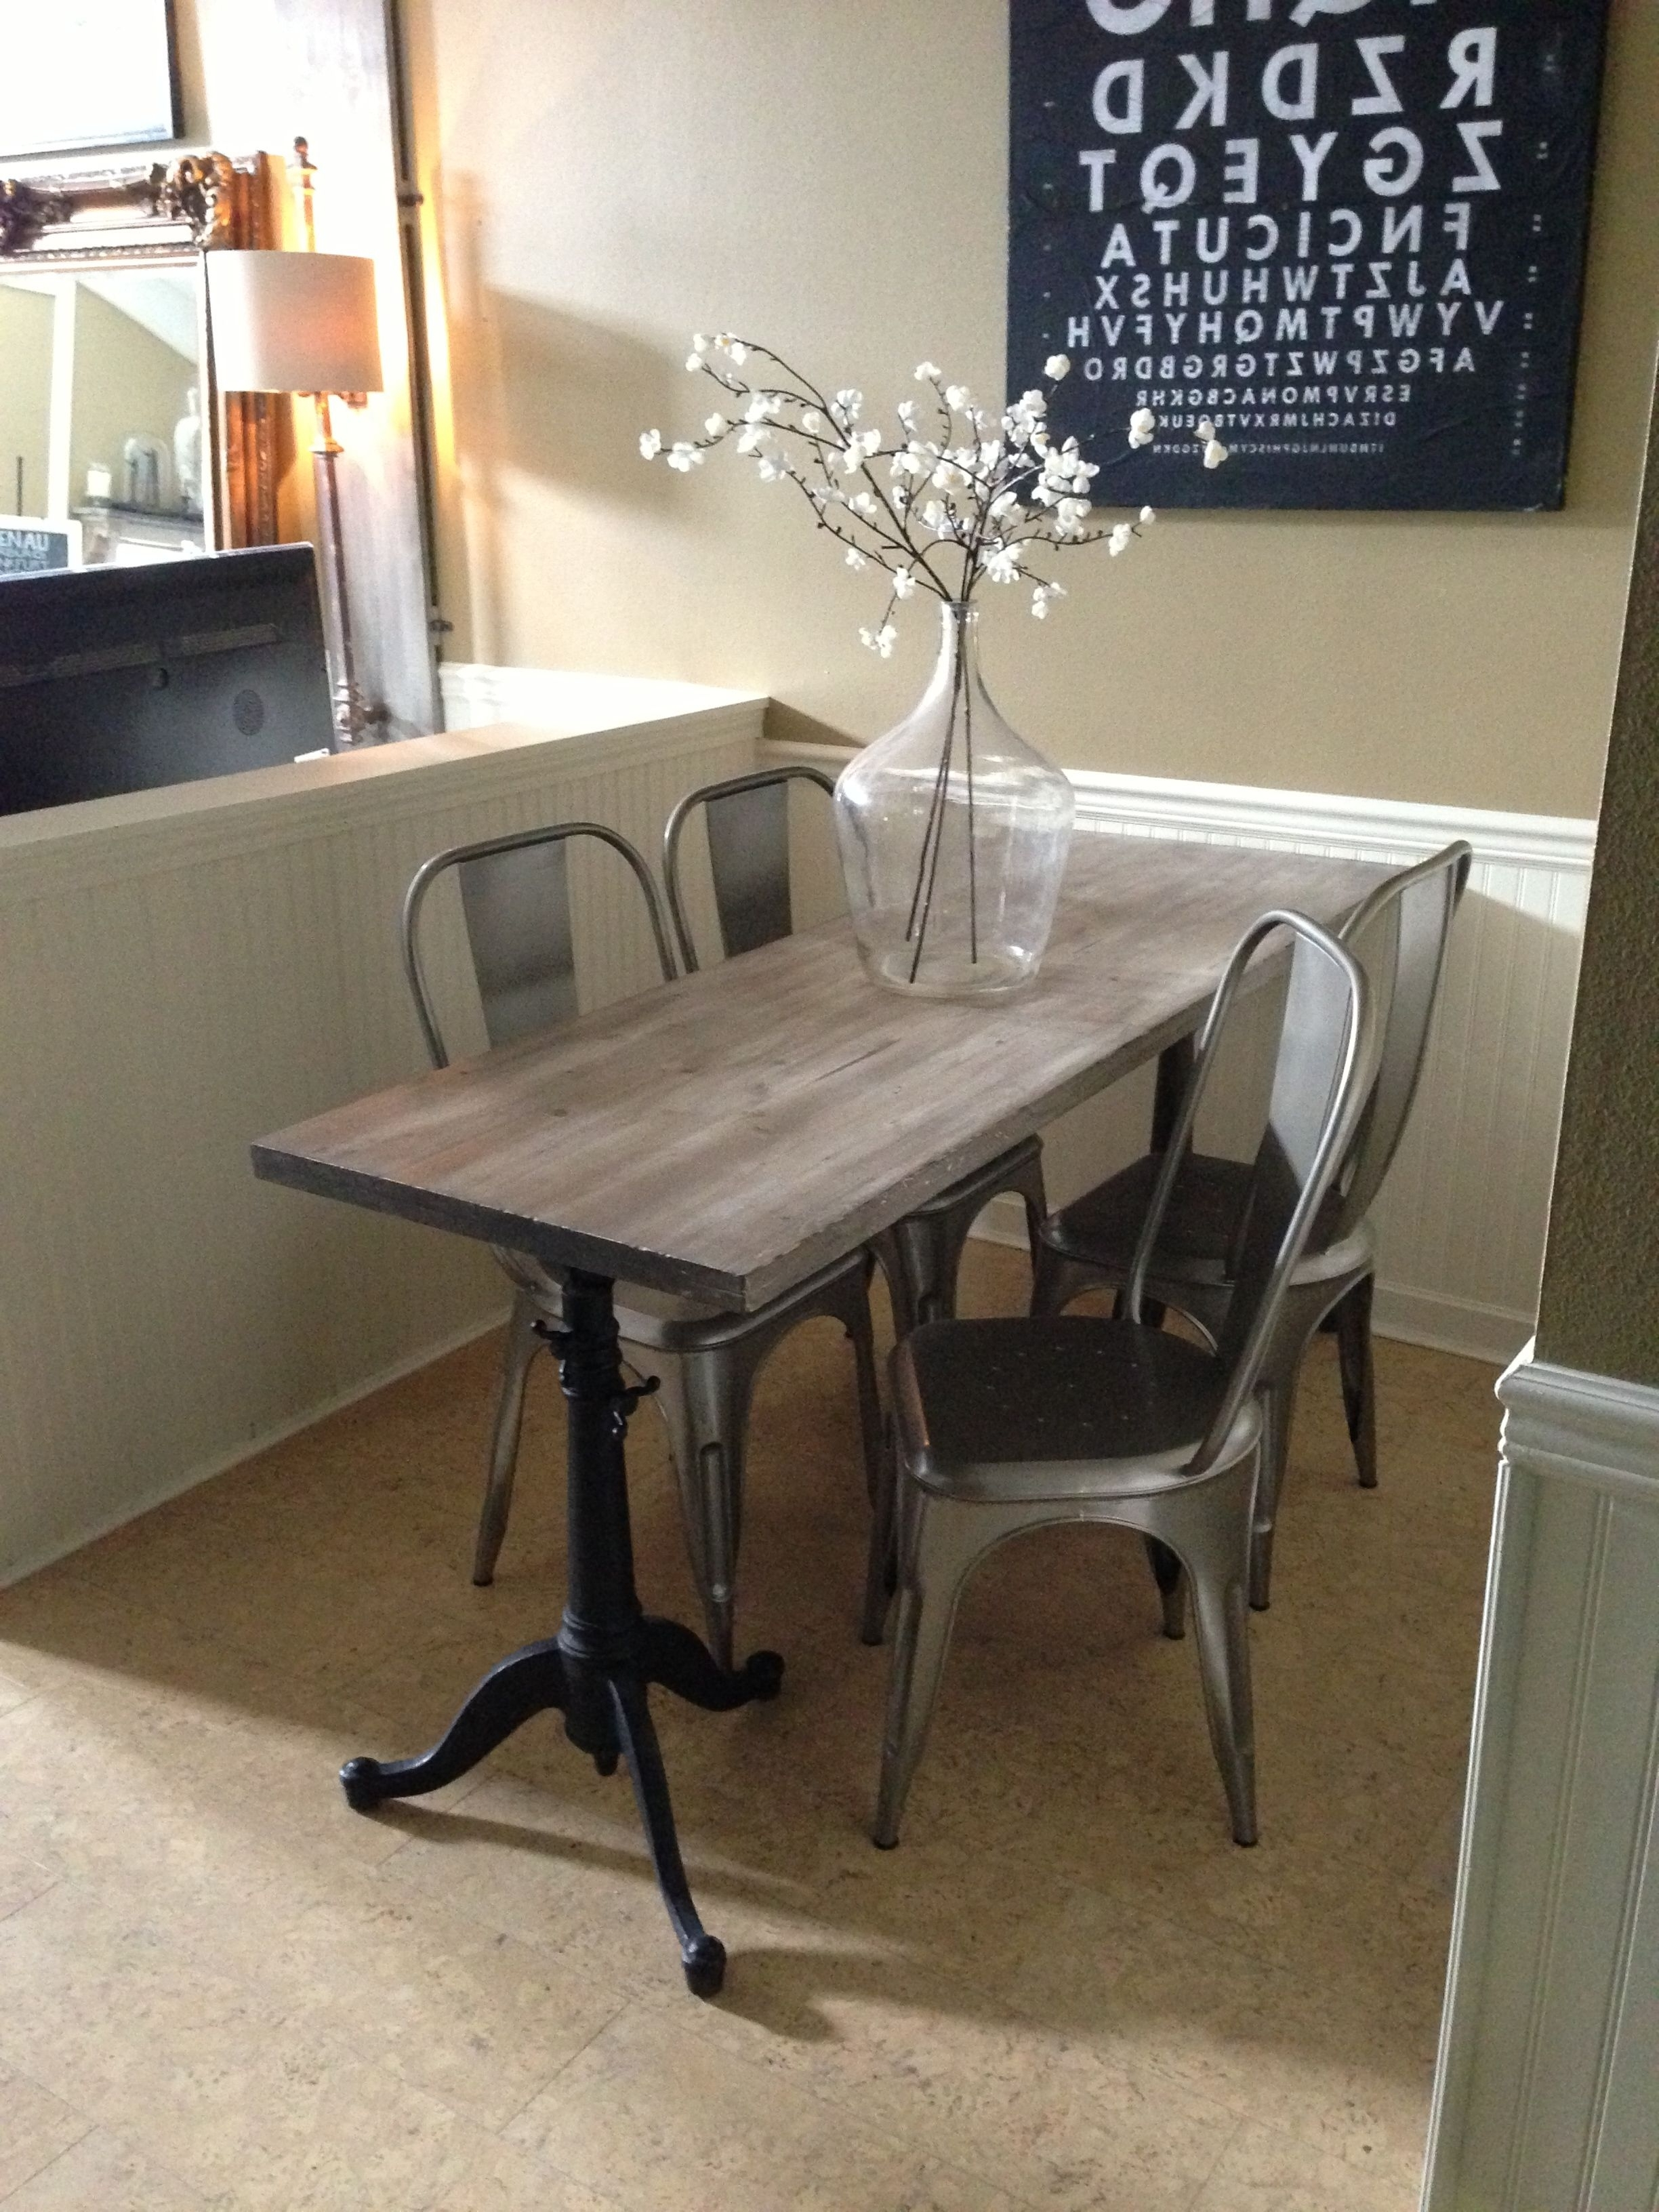 Narrow Dining Table For Narrow Space. Industrial Chic, Drafting Pertaining To Latest Small Dining Tables (Gallery 23 of 25)